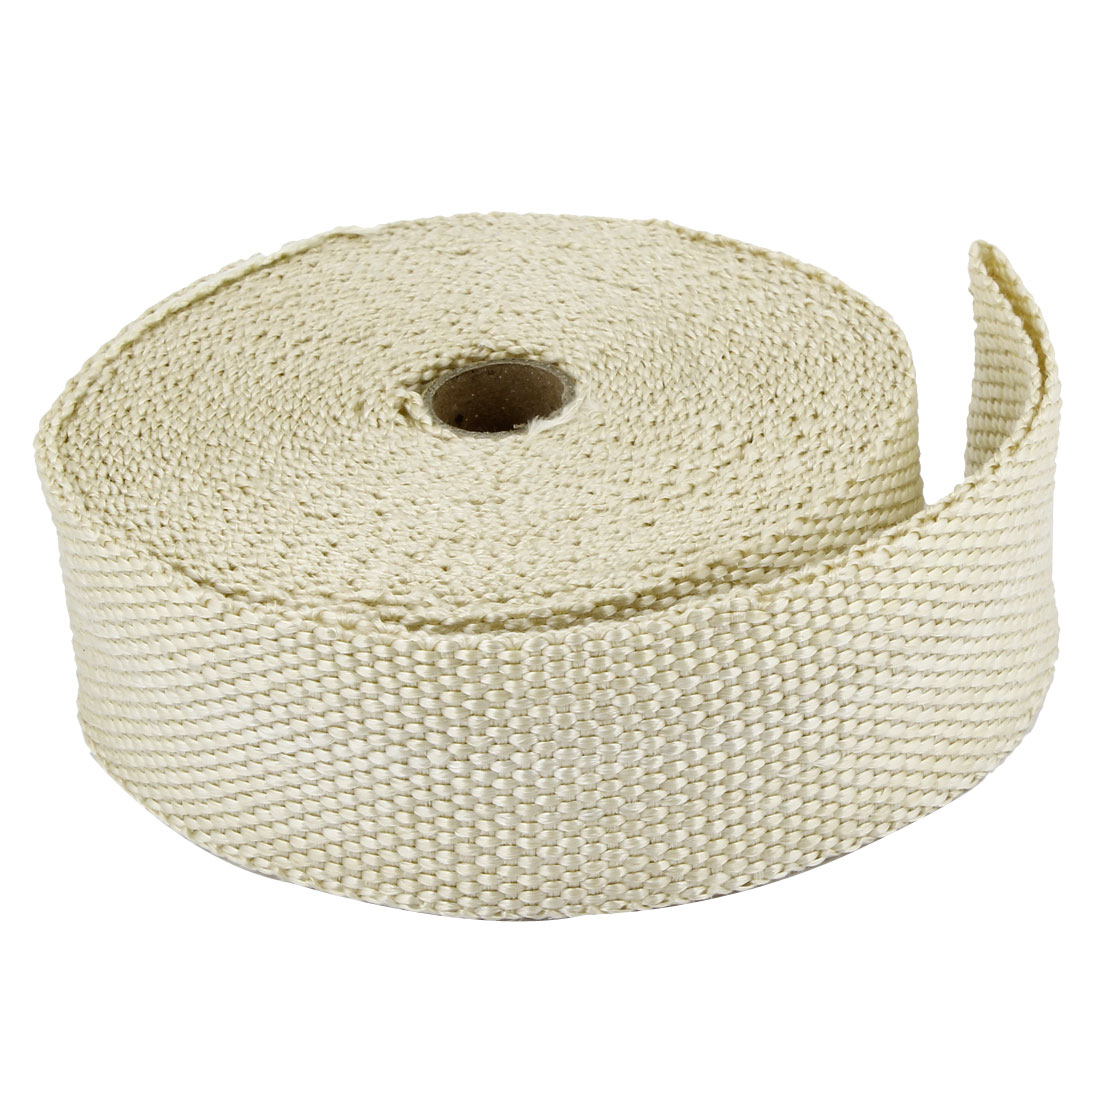 5cm Width 13M Length Fiber Exhaust Header Wrap Insulating Tape Kit Beige